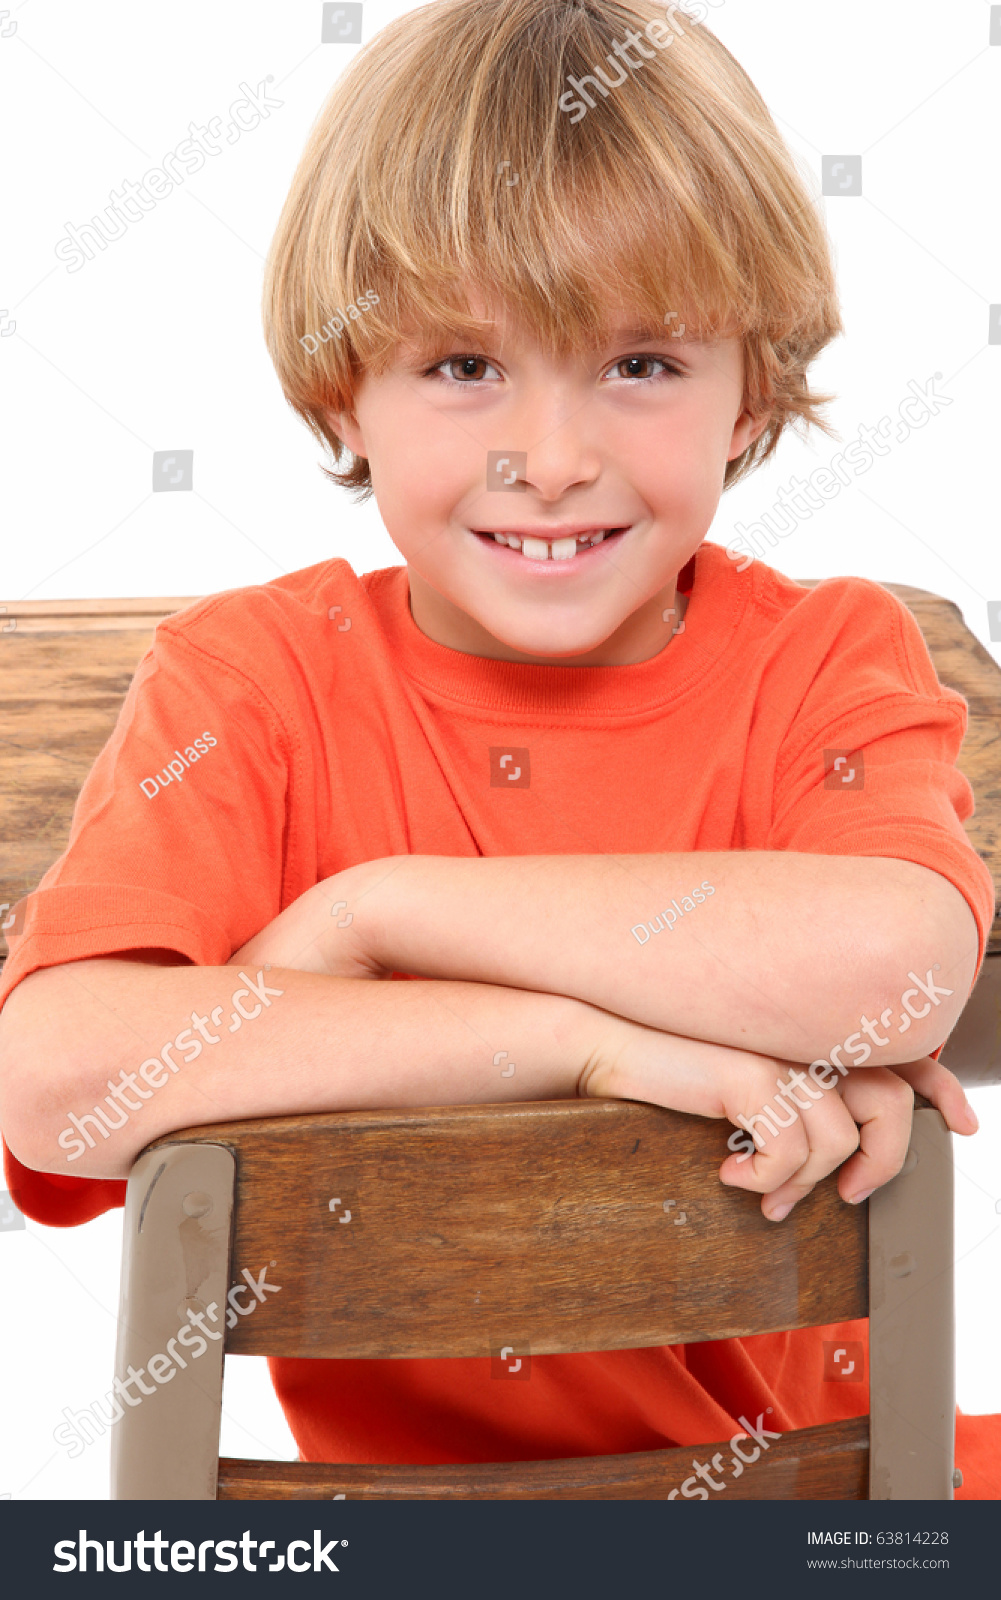 8 Year Boy Bedroom Design: Attractive 8 Year Old Boy Elementary Stock Photo 63814228